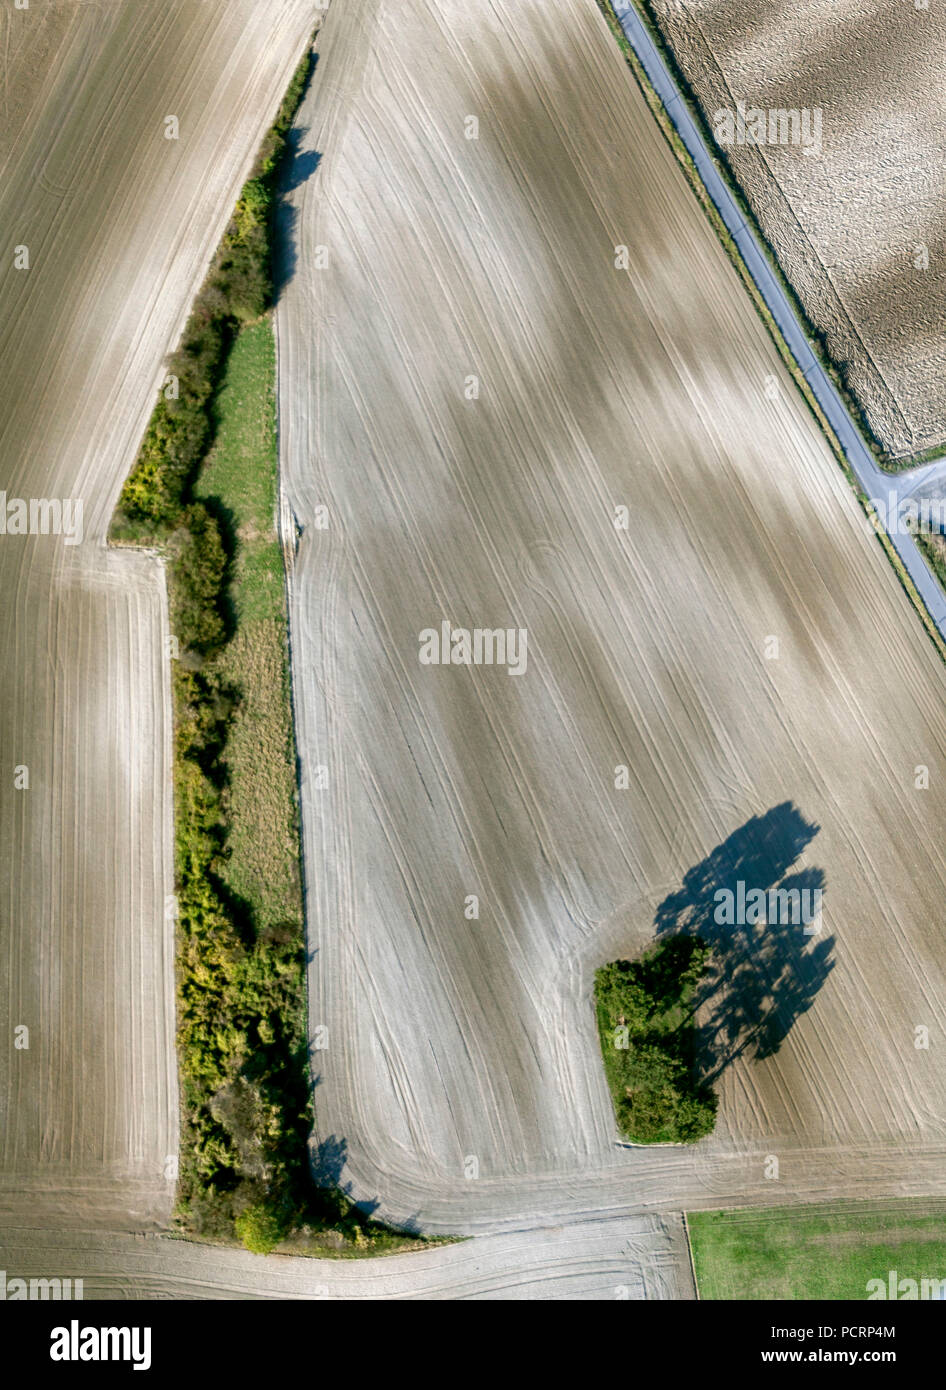 Aerial view, hedgerows in the shape of a one, the photography was reversed, Hamm, Ruhr area, North Rhine-Westphalia, Germany, Europe - Stock Image